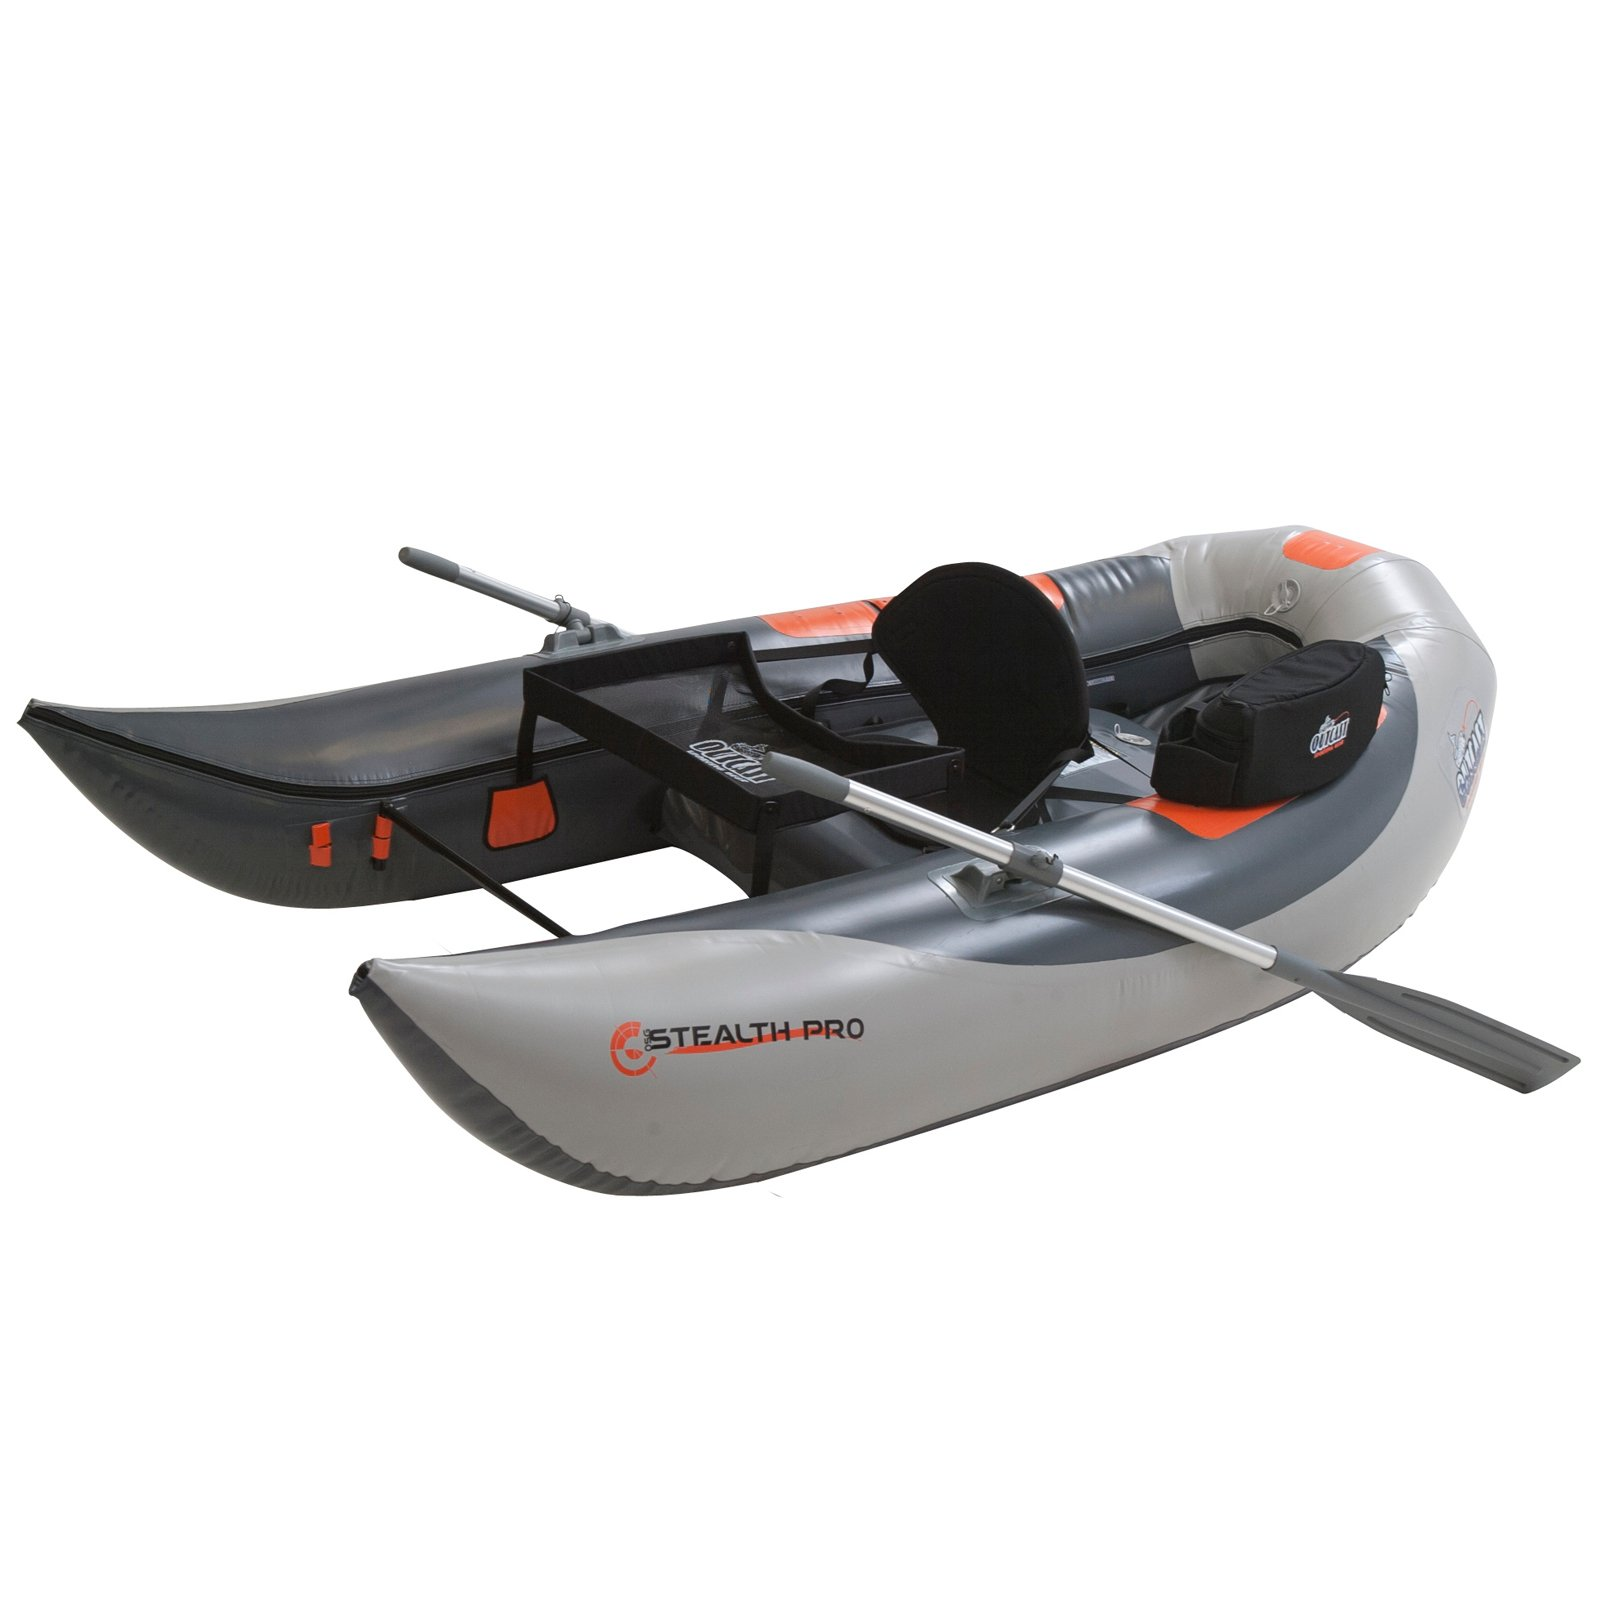 New Oucast Stealth Frameless Pro Watercraft by Outcast Sporting Gear